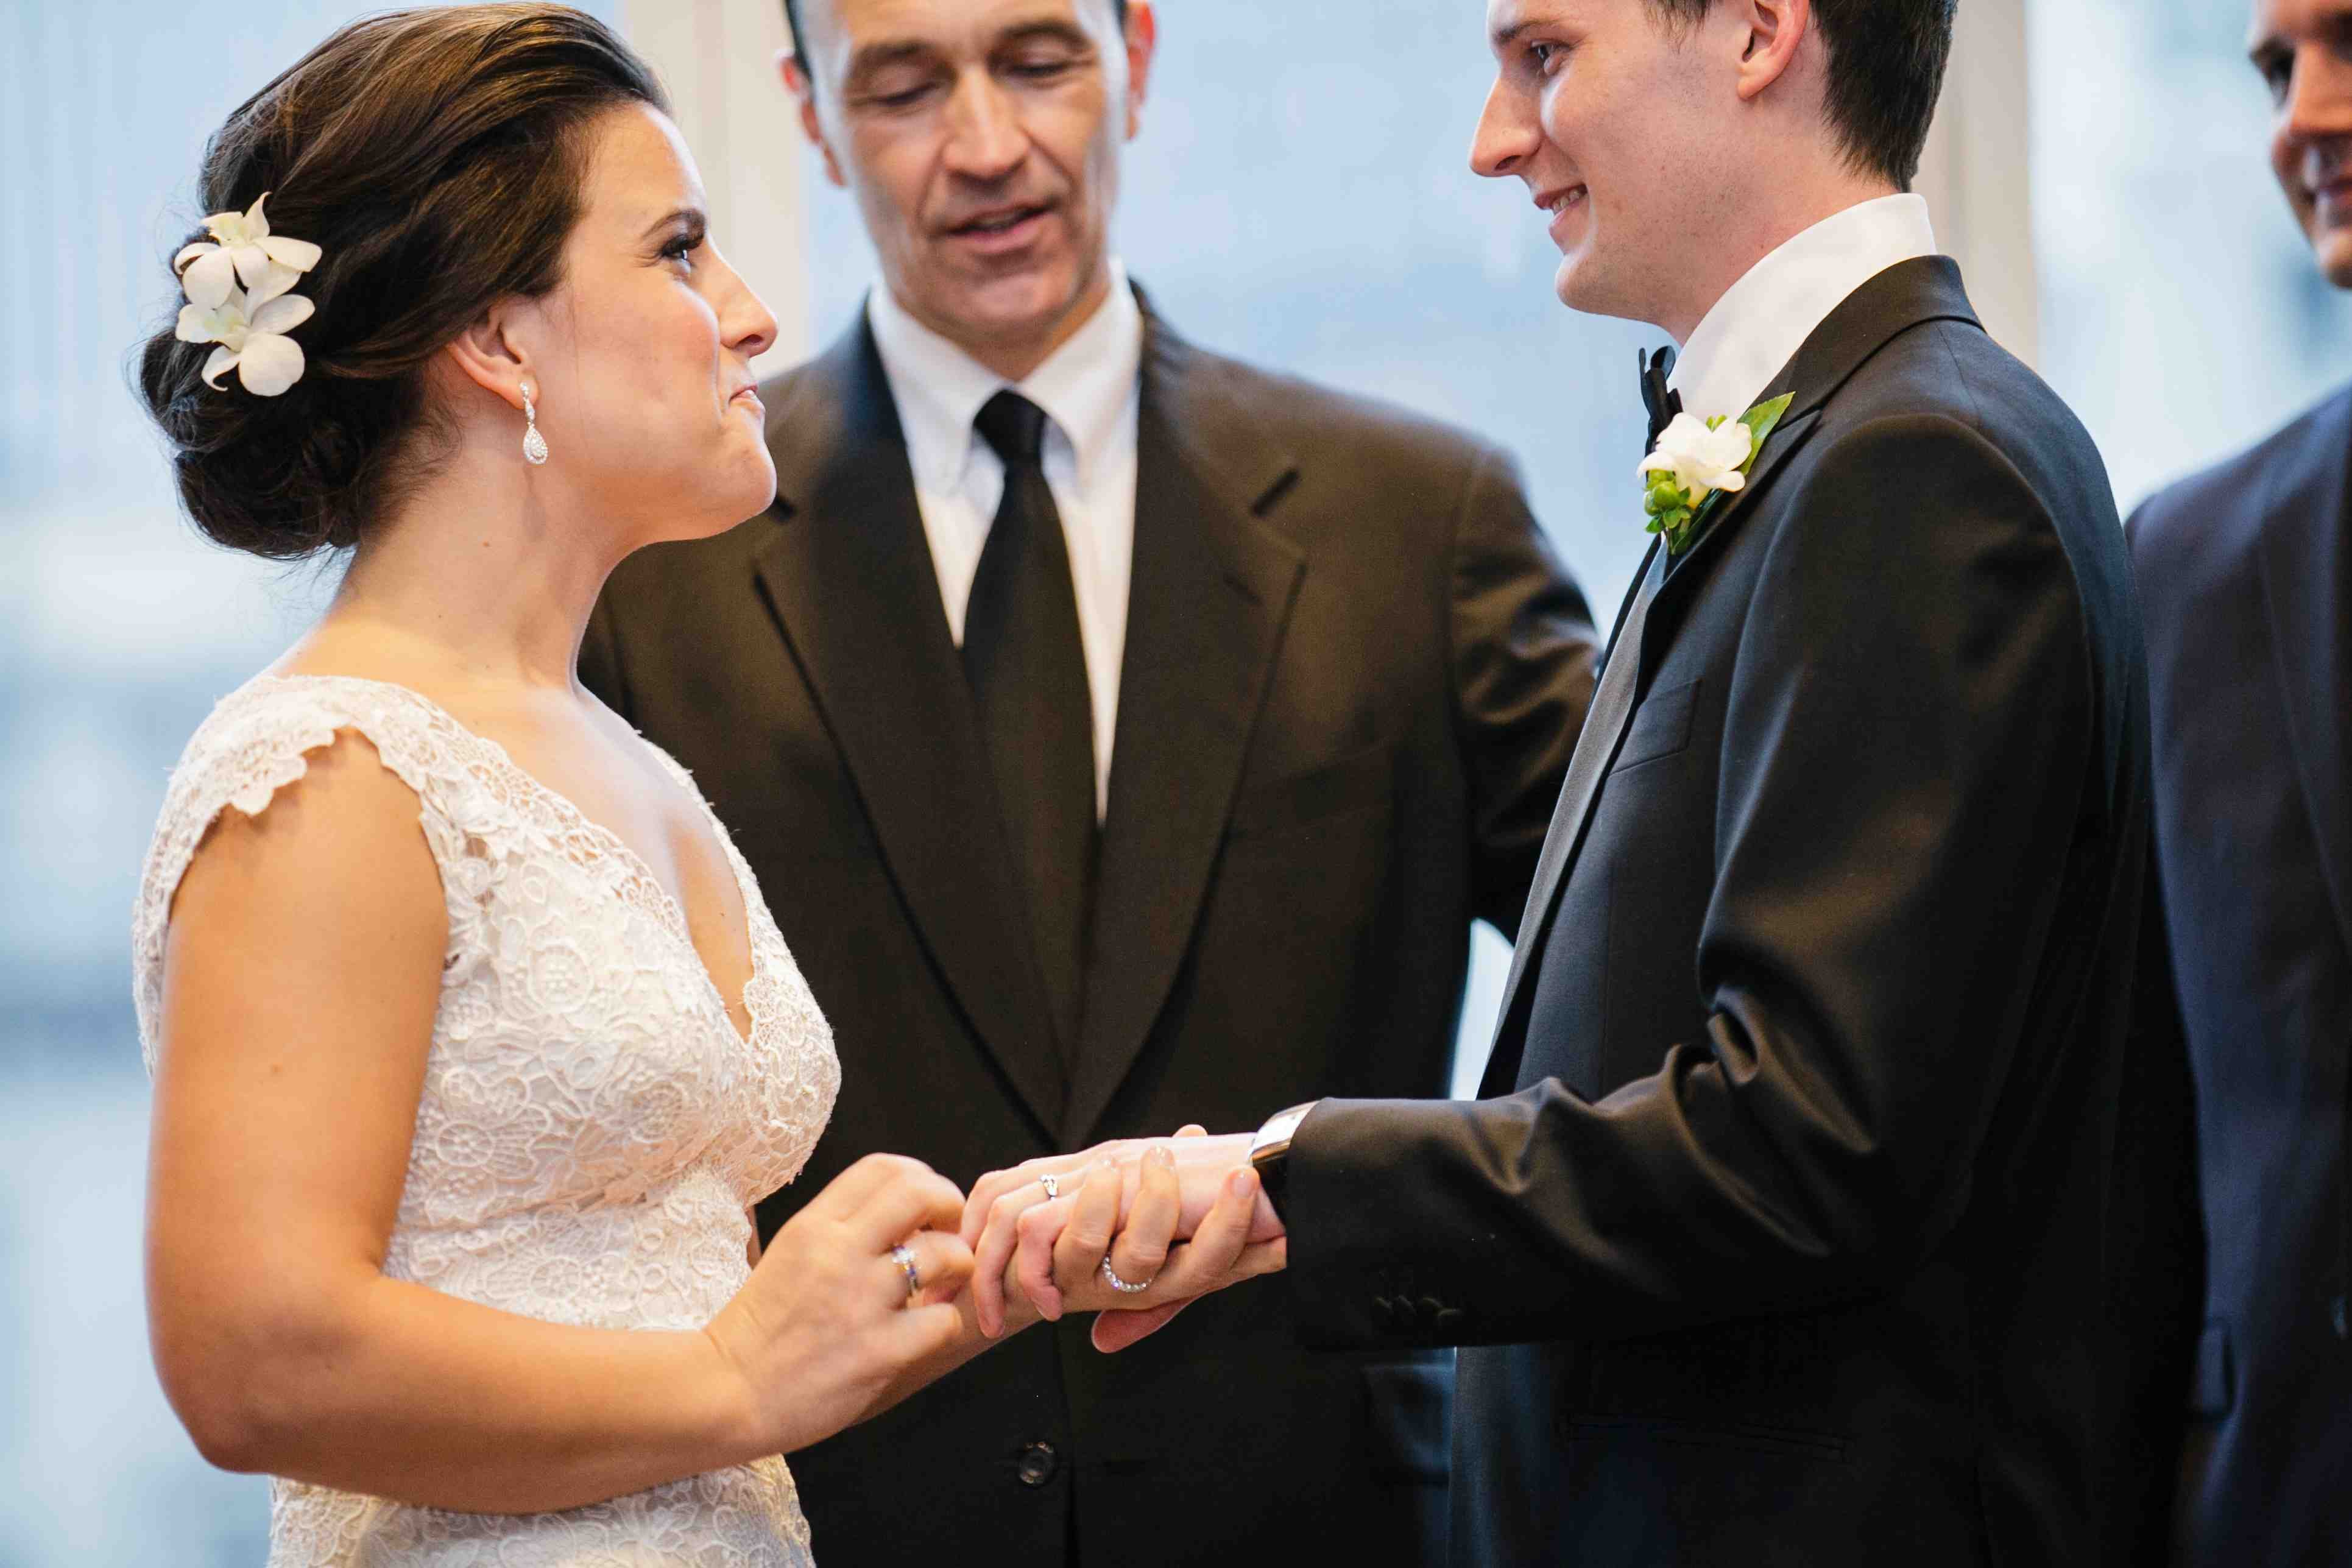 Chicago Wedding Officiant Marriage Pastor DuPage County